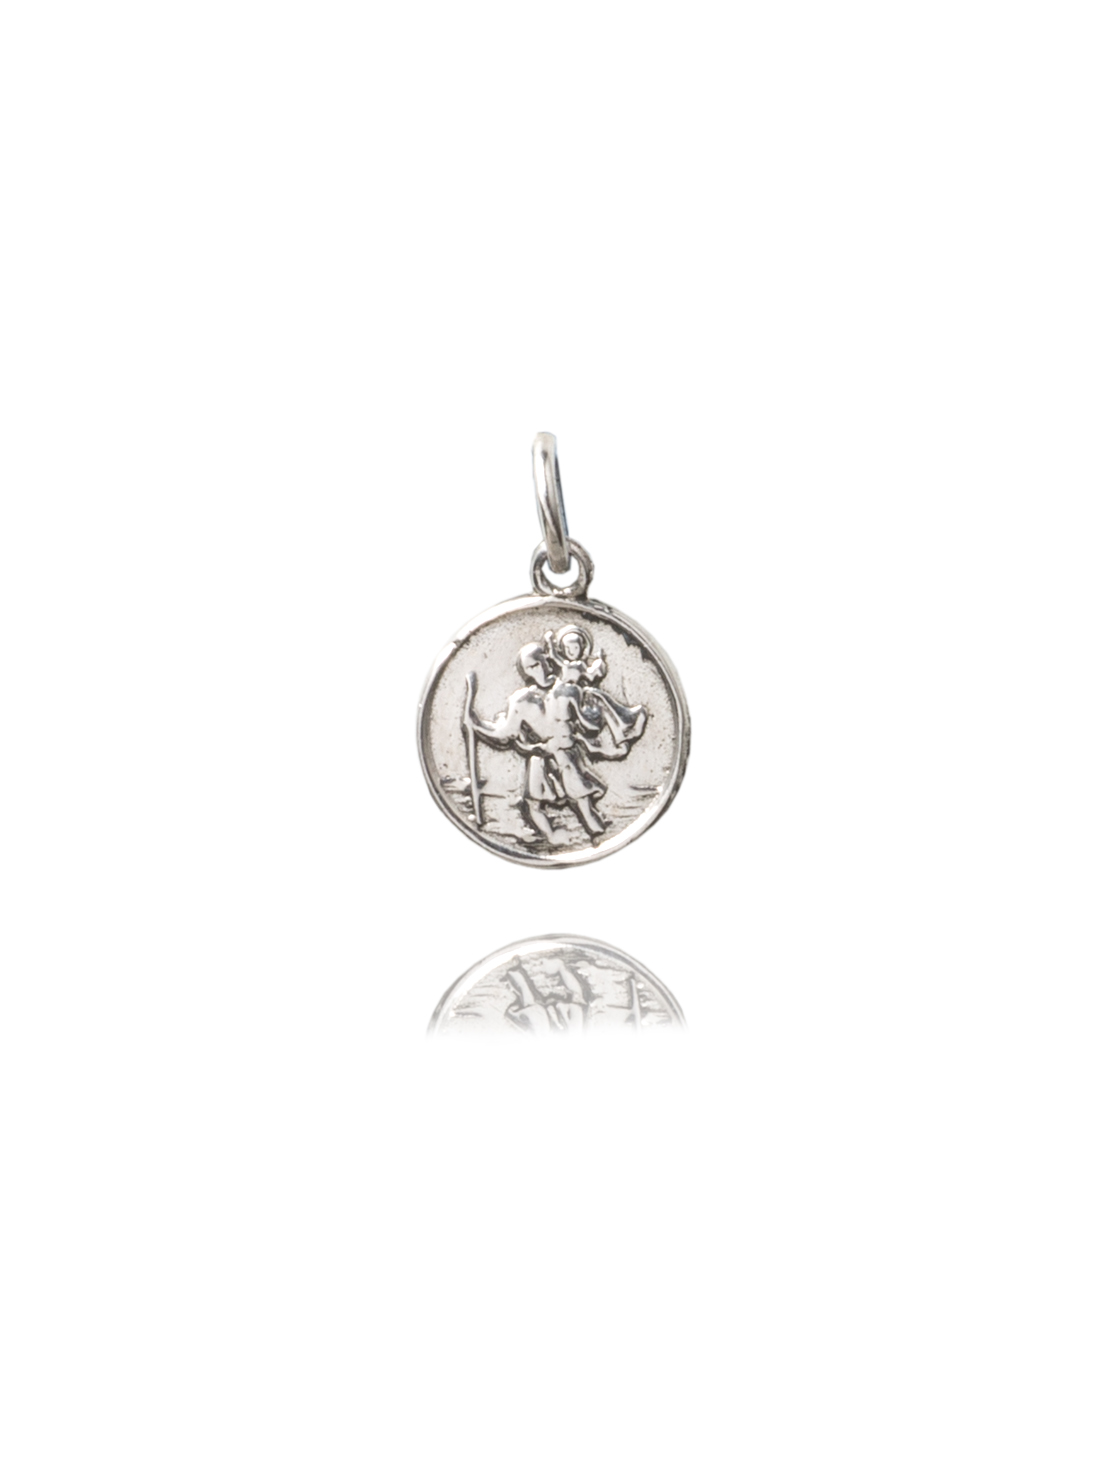 Small Silver St Christopher Charm